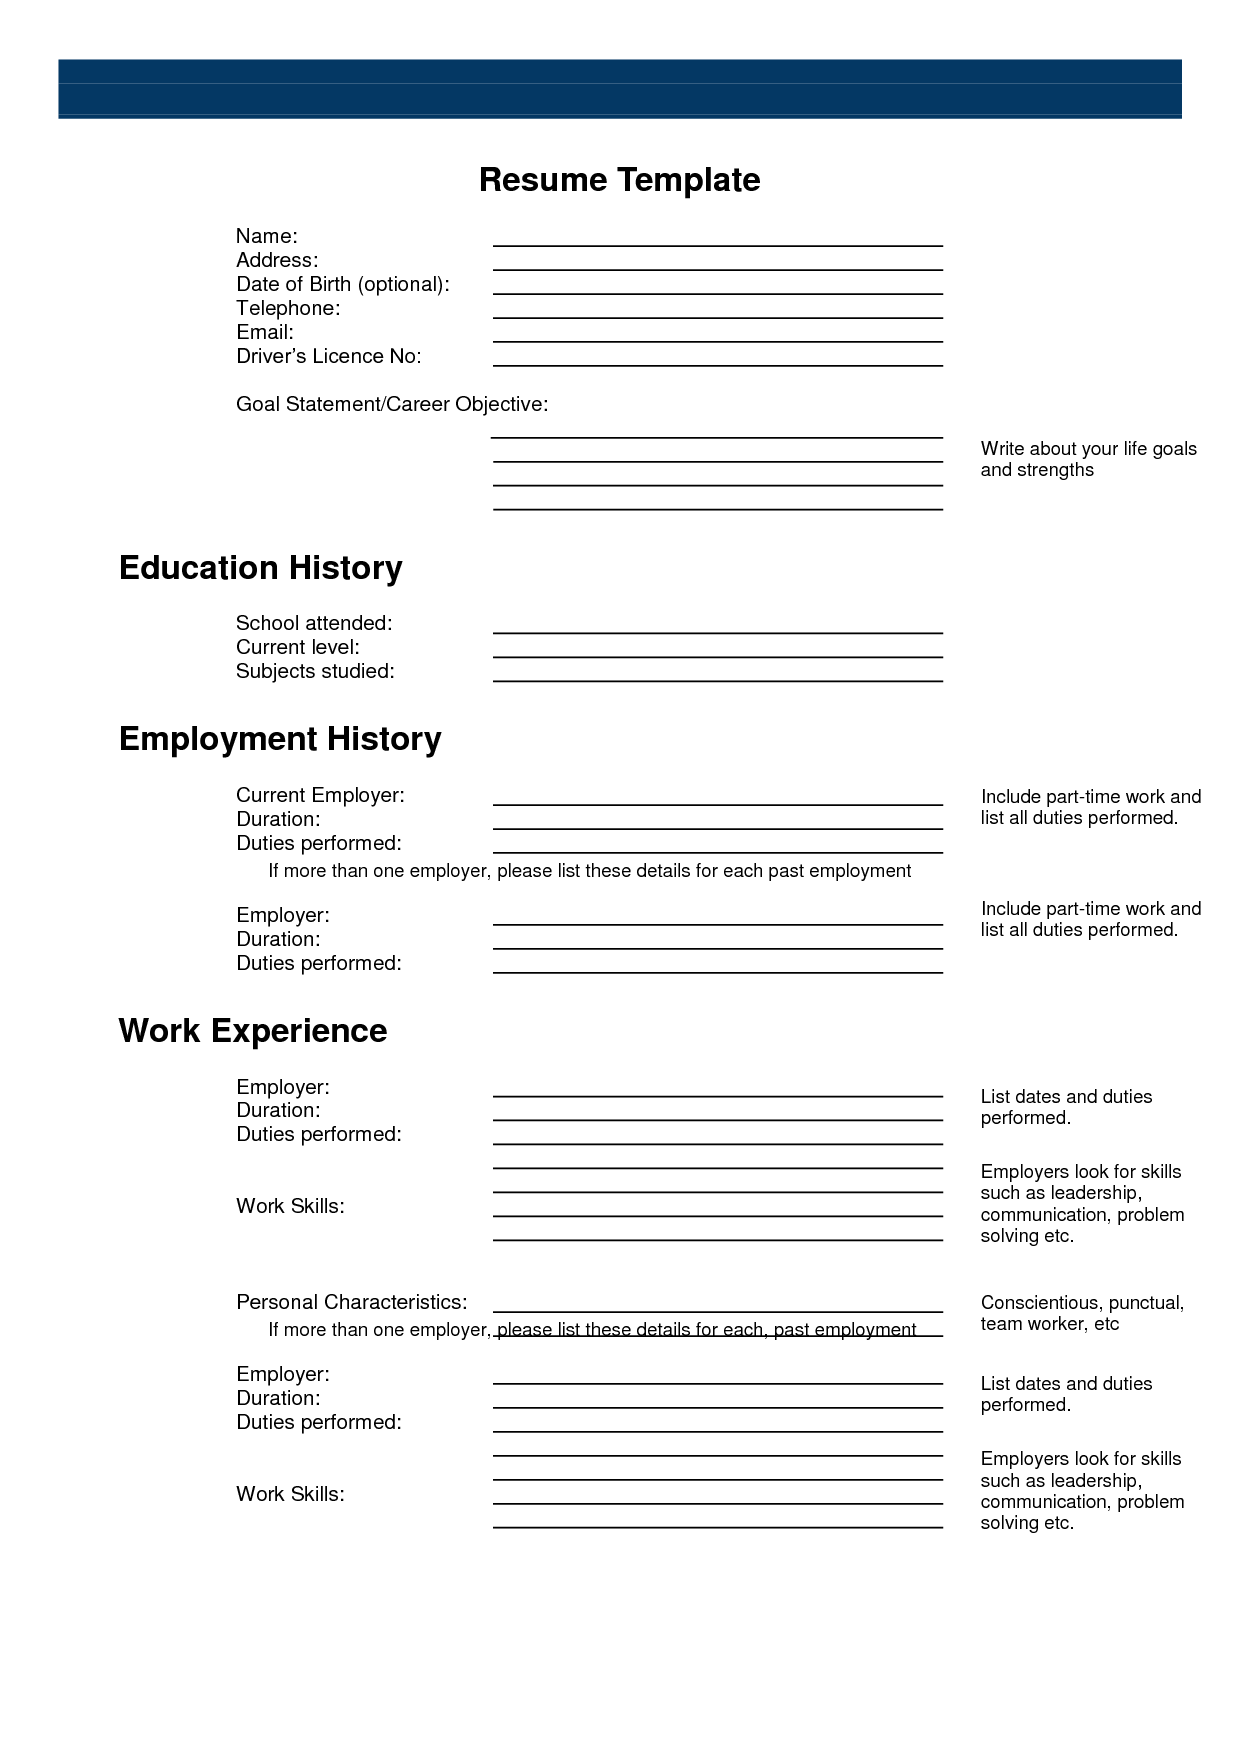 Free Fill In Resume Template Free Printable Sample Resume Templates  Httpwww.resumecareer .